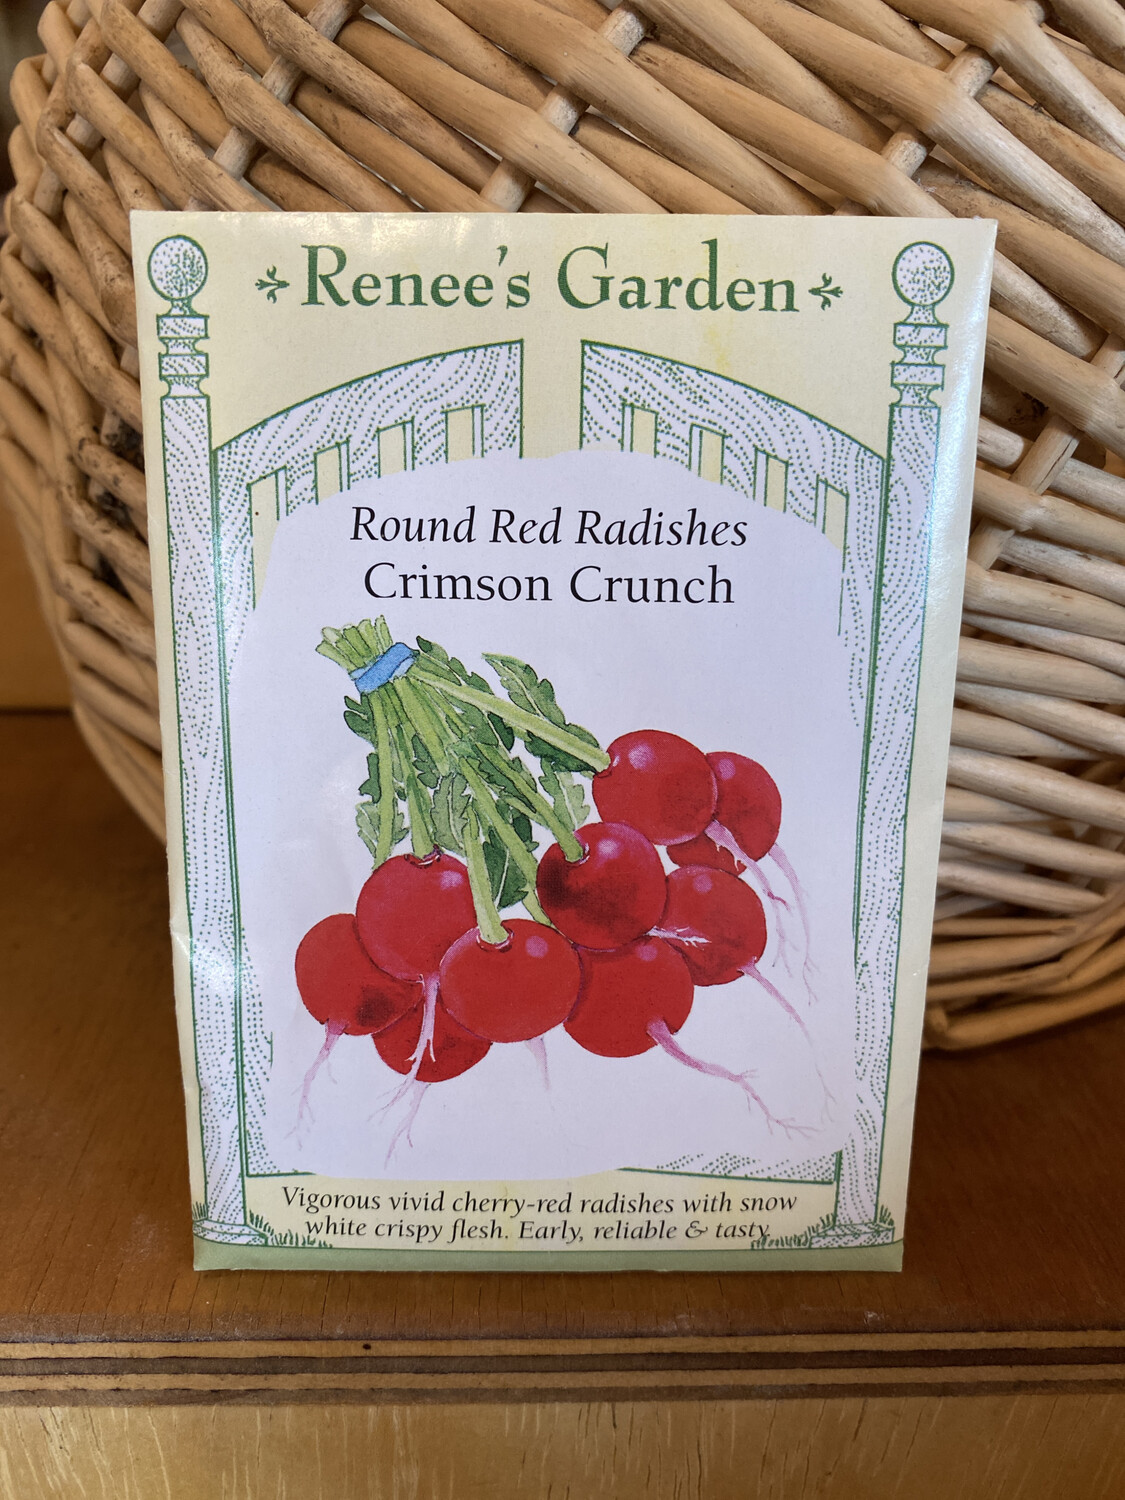 Round Red Radishes Crimson Crunch | Renee's Garden Seed Pack | Past Year's Seeds | Reduced Price